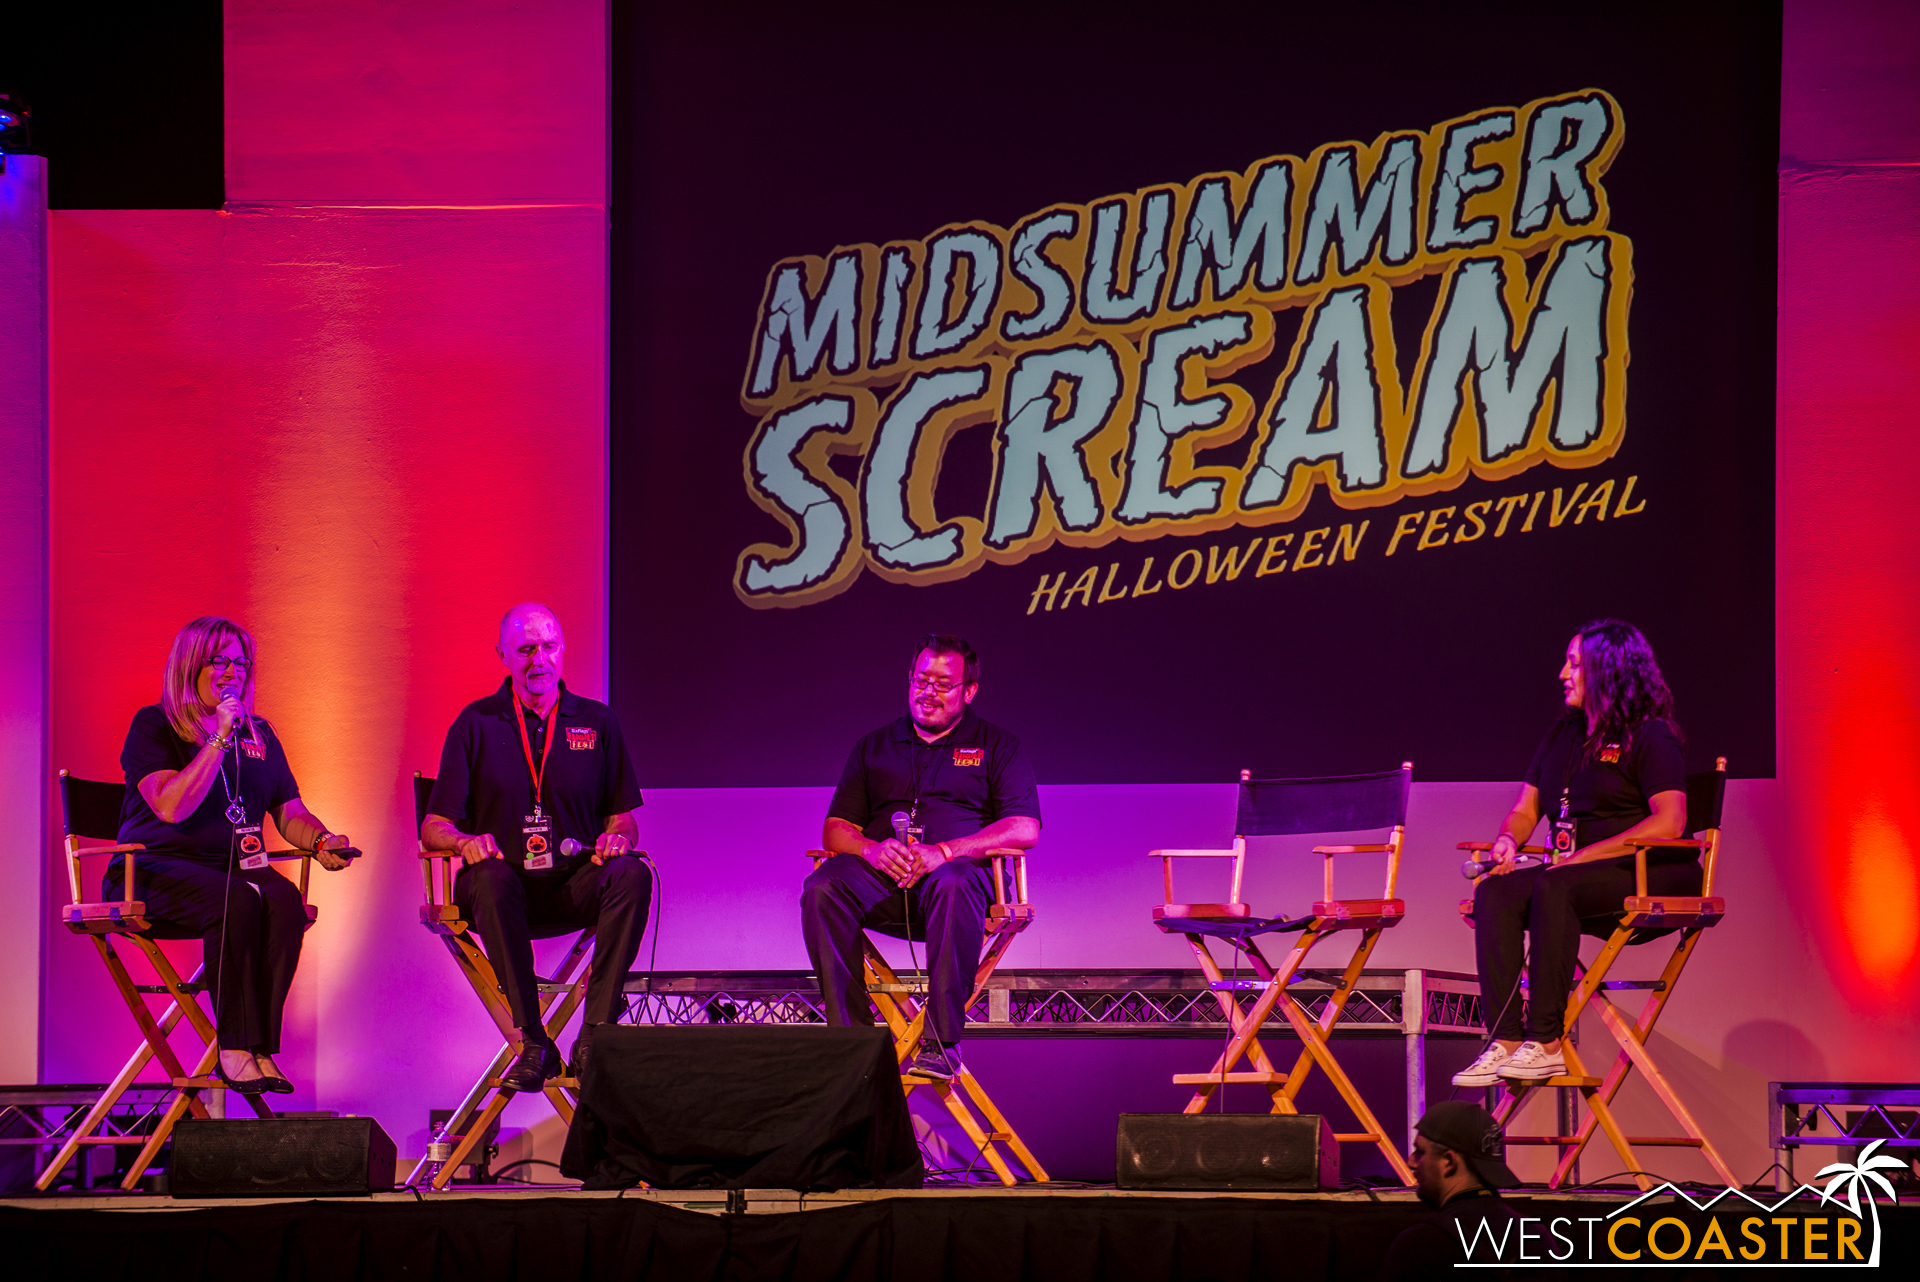 The Fright Fest team was quite excited to be at Midsummer Scream to announce their 2016 plans.